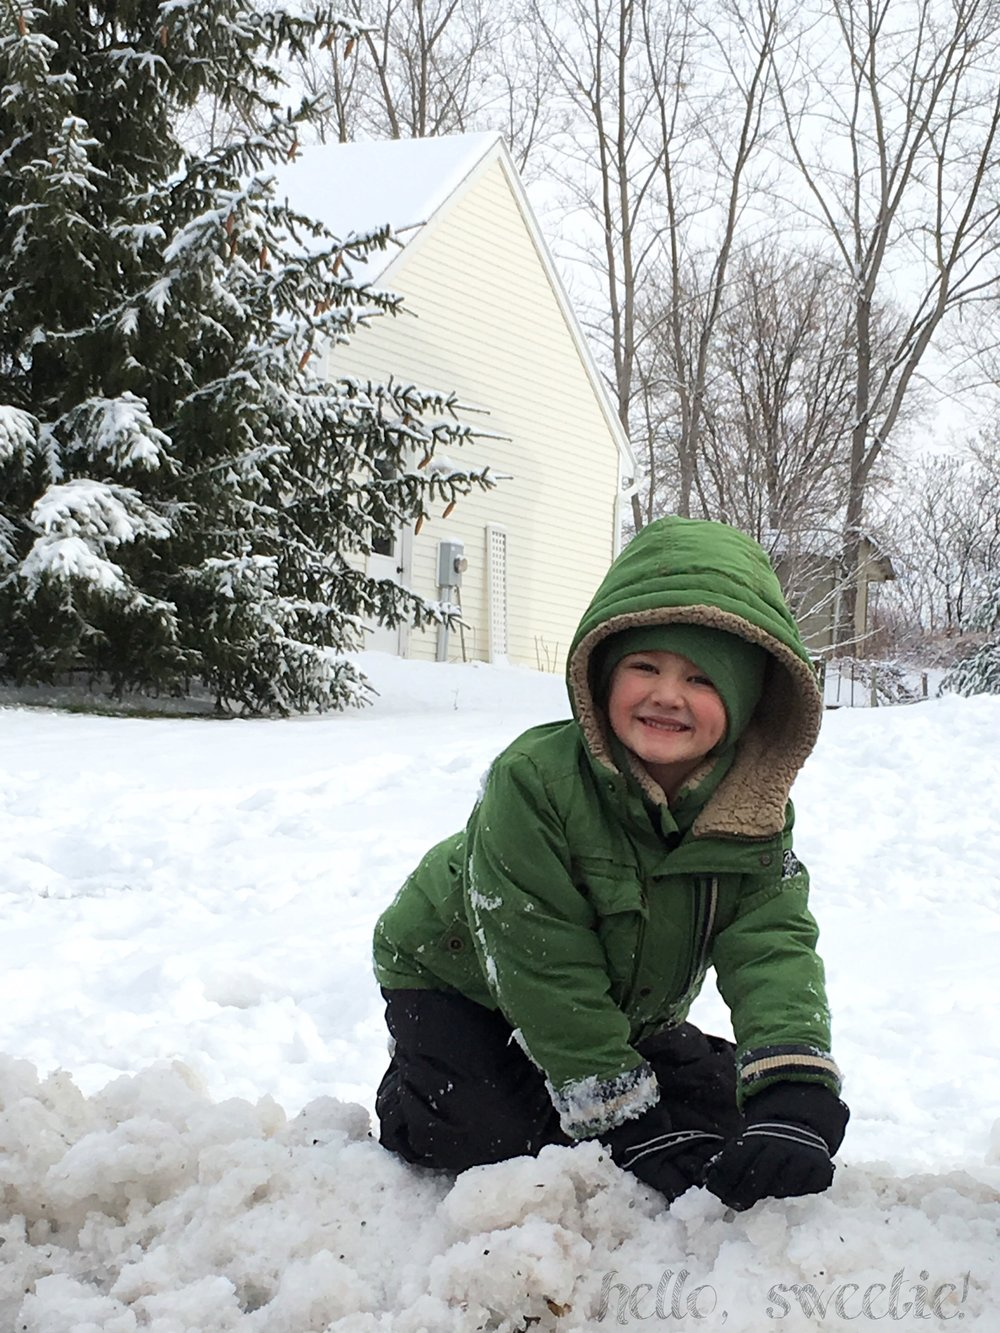 With enough layers on, kids can stay outdoors for hours!